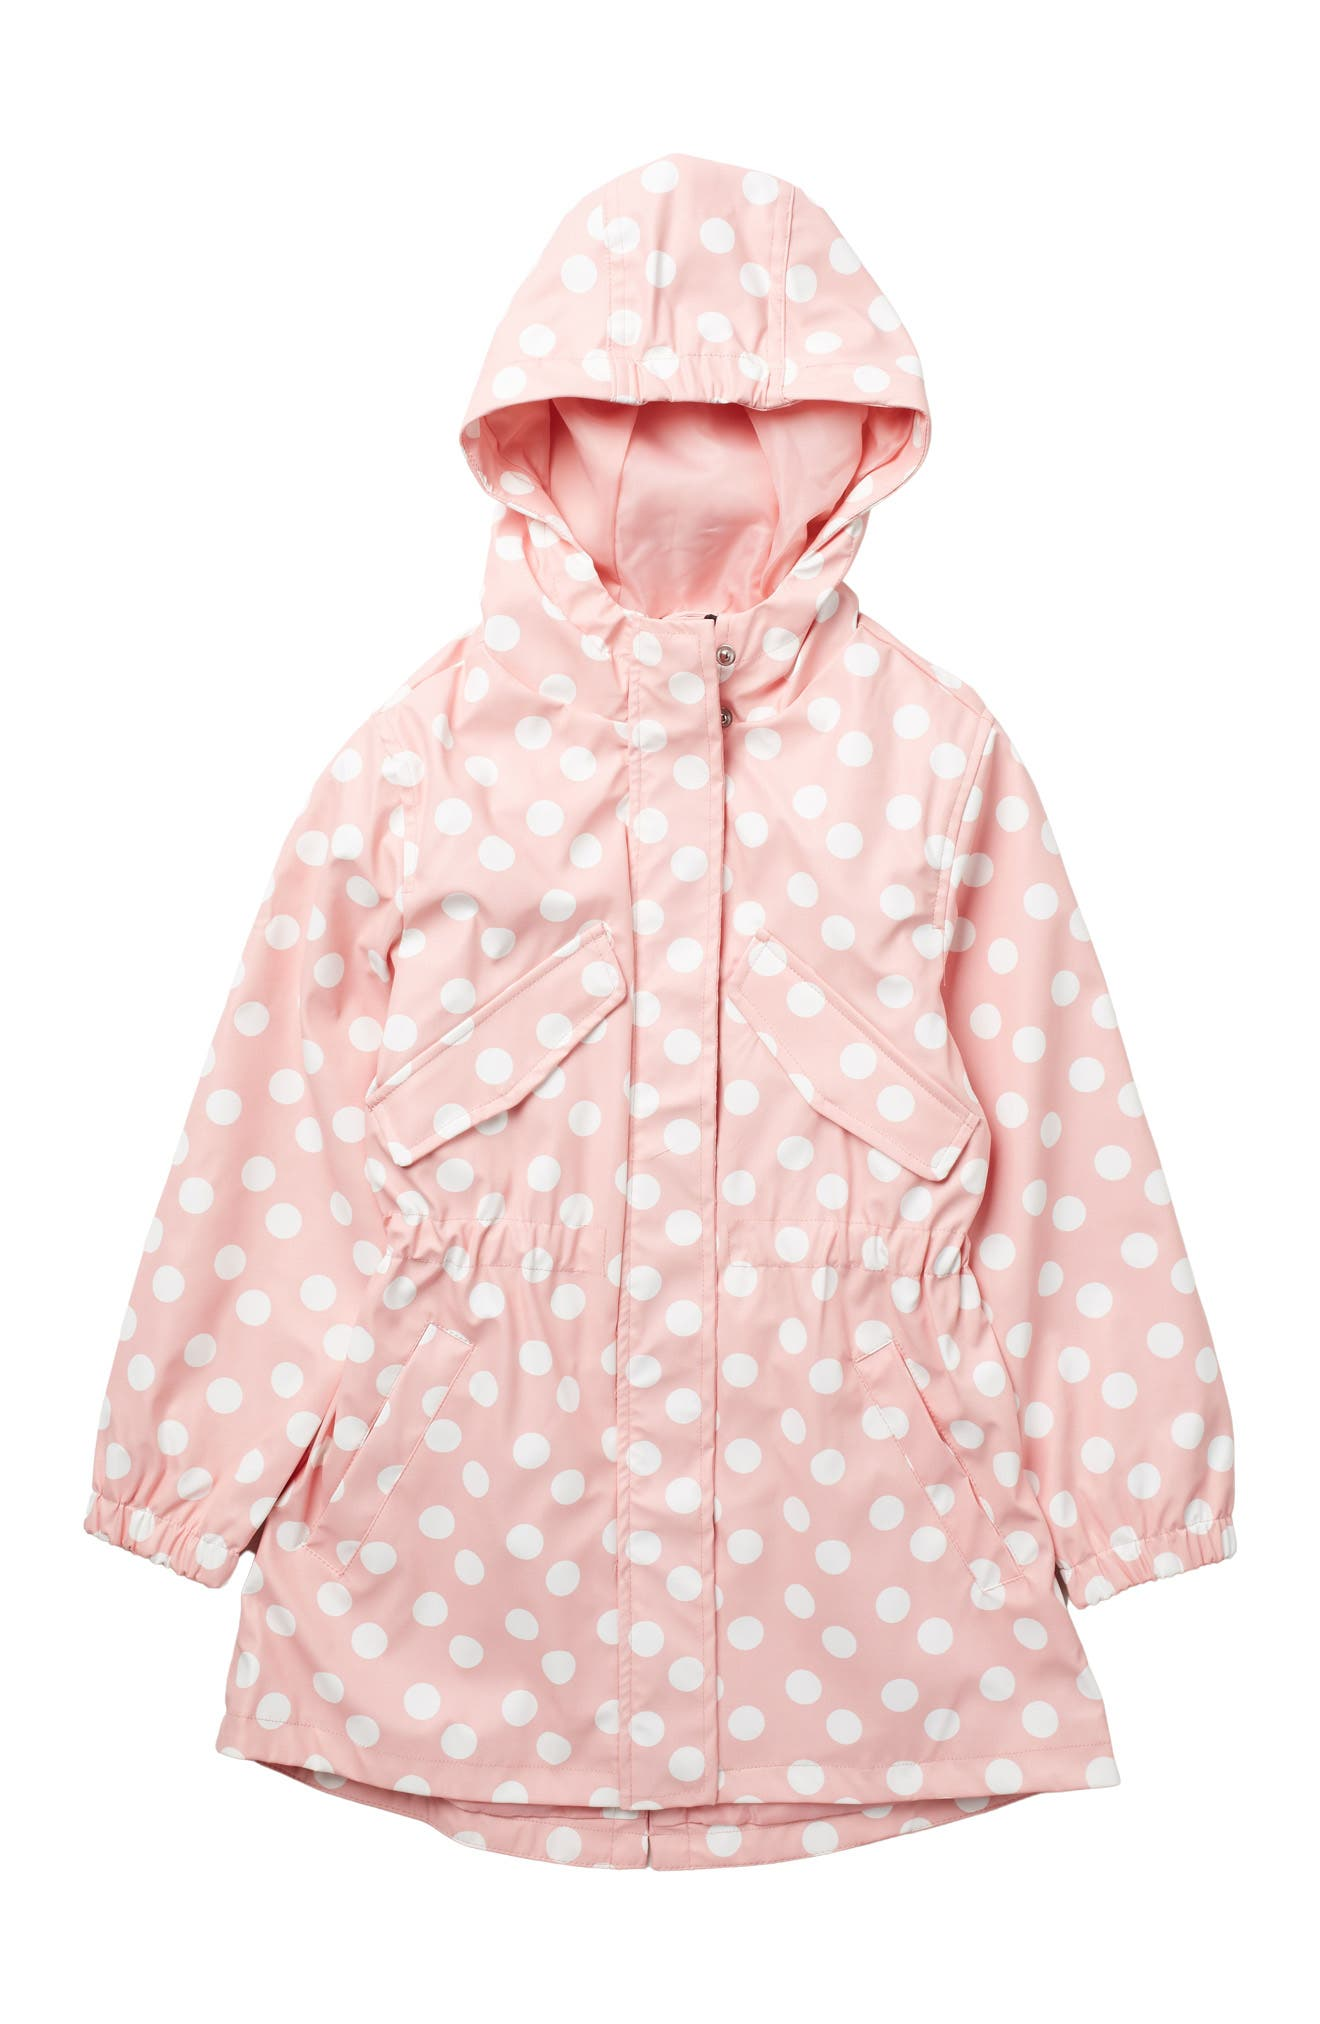 Image of Urban Republic Hooded Polka Dot Anorak Raincoat